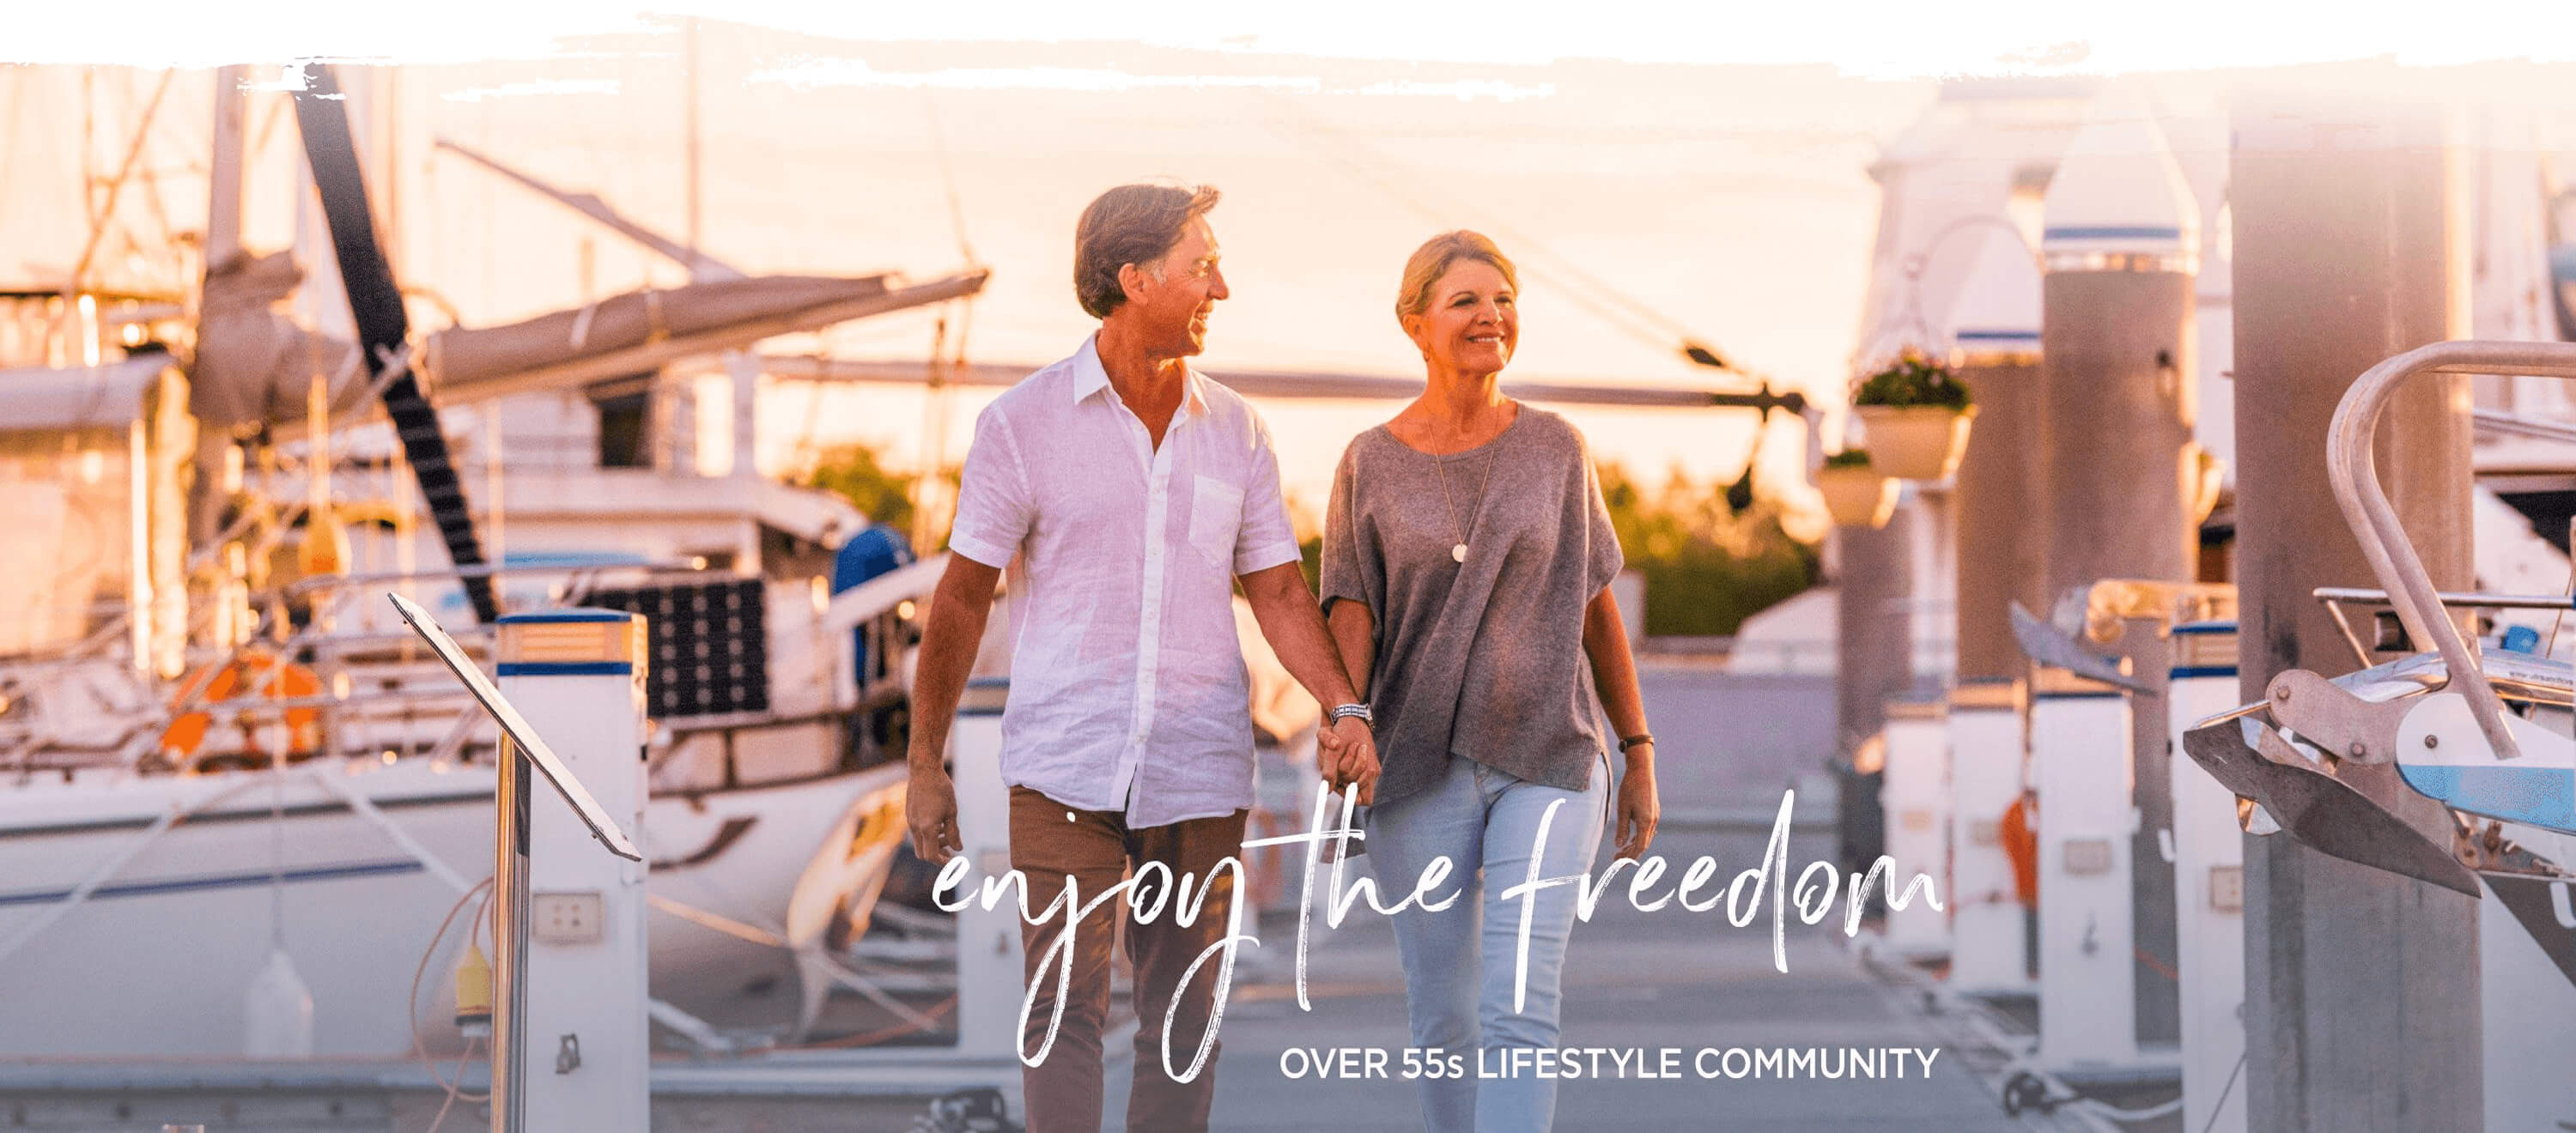 enjoy the freedom over 55s lifestyle community